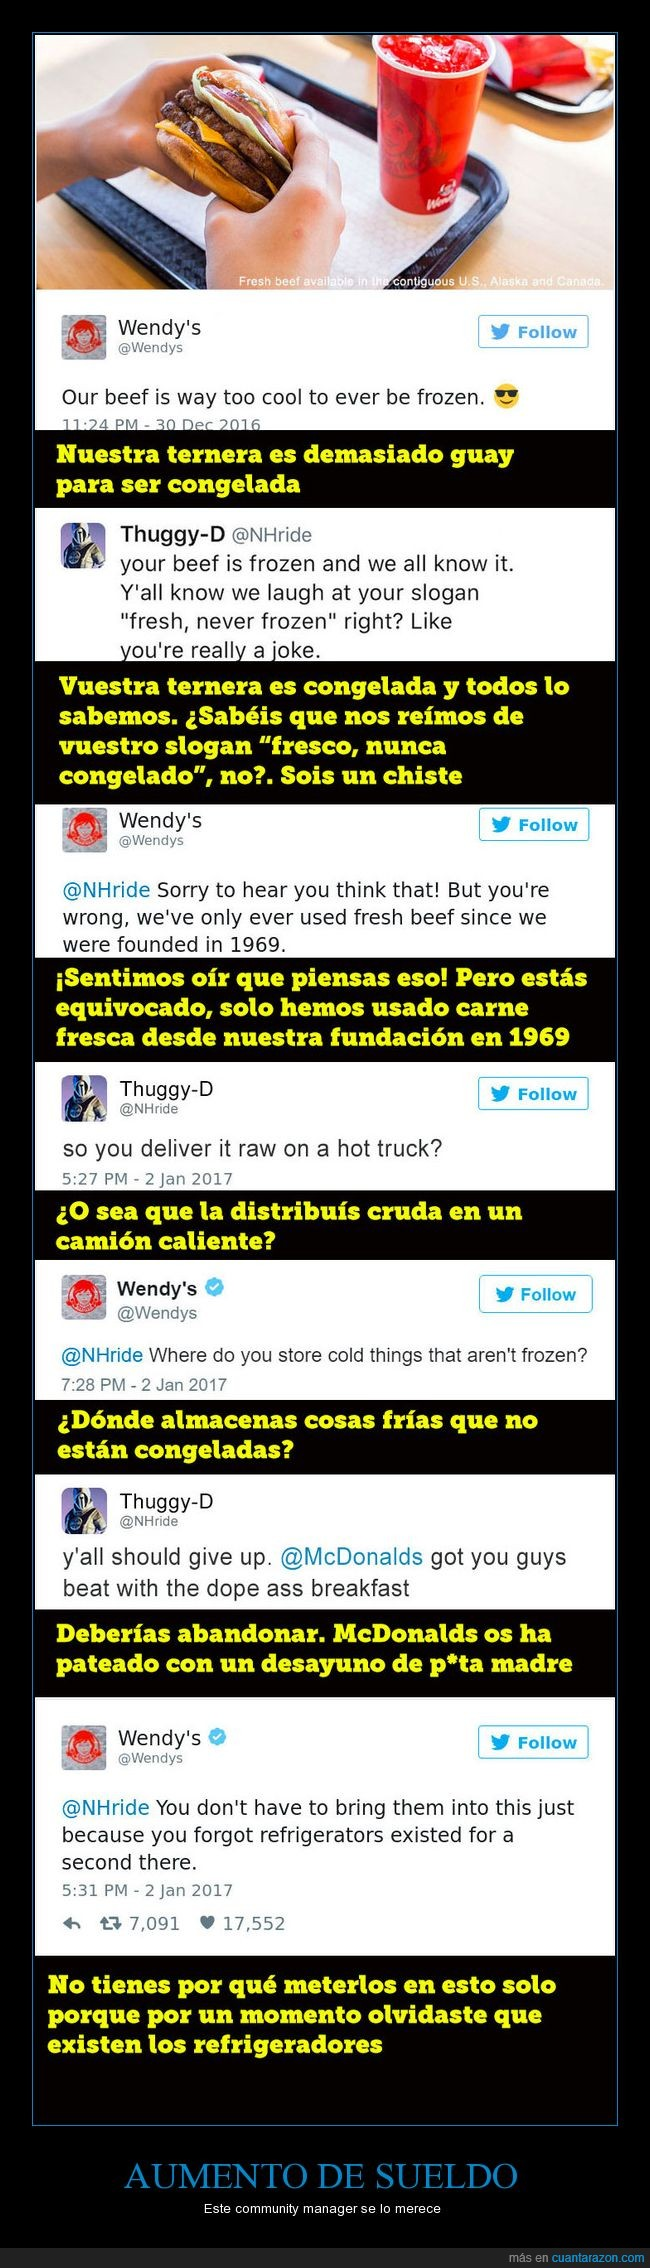 community manager,hamburguesas,tweets,wendy's,zasca